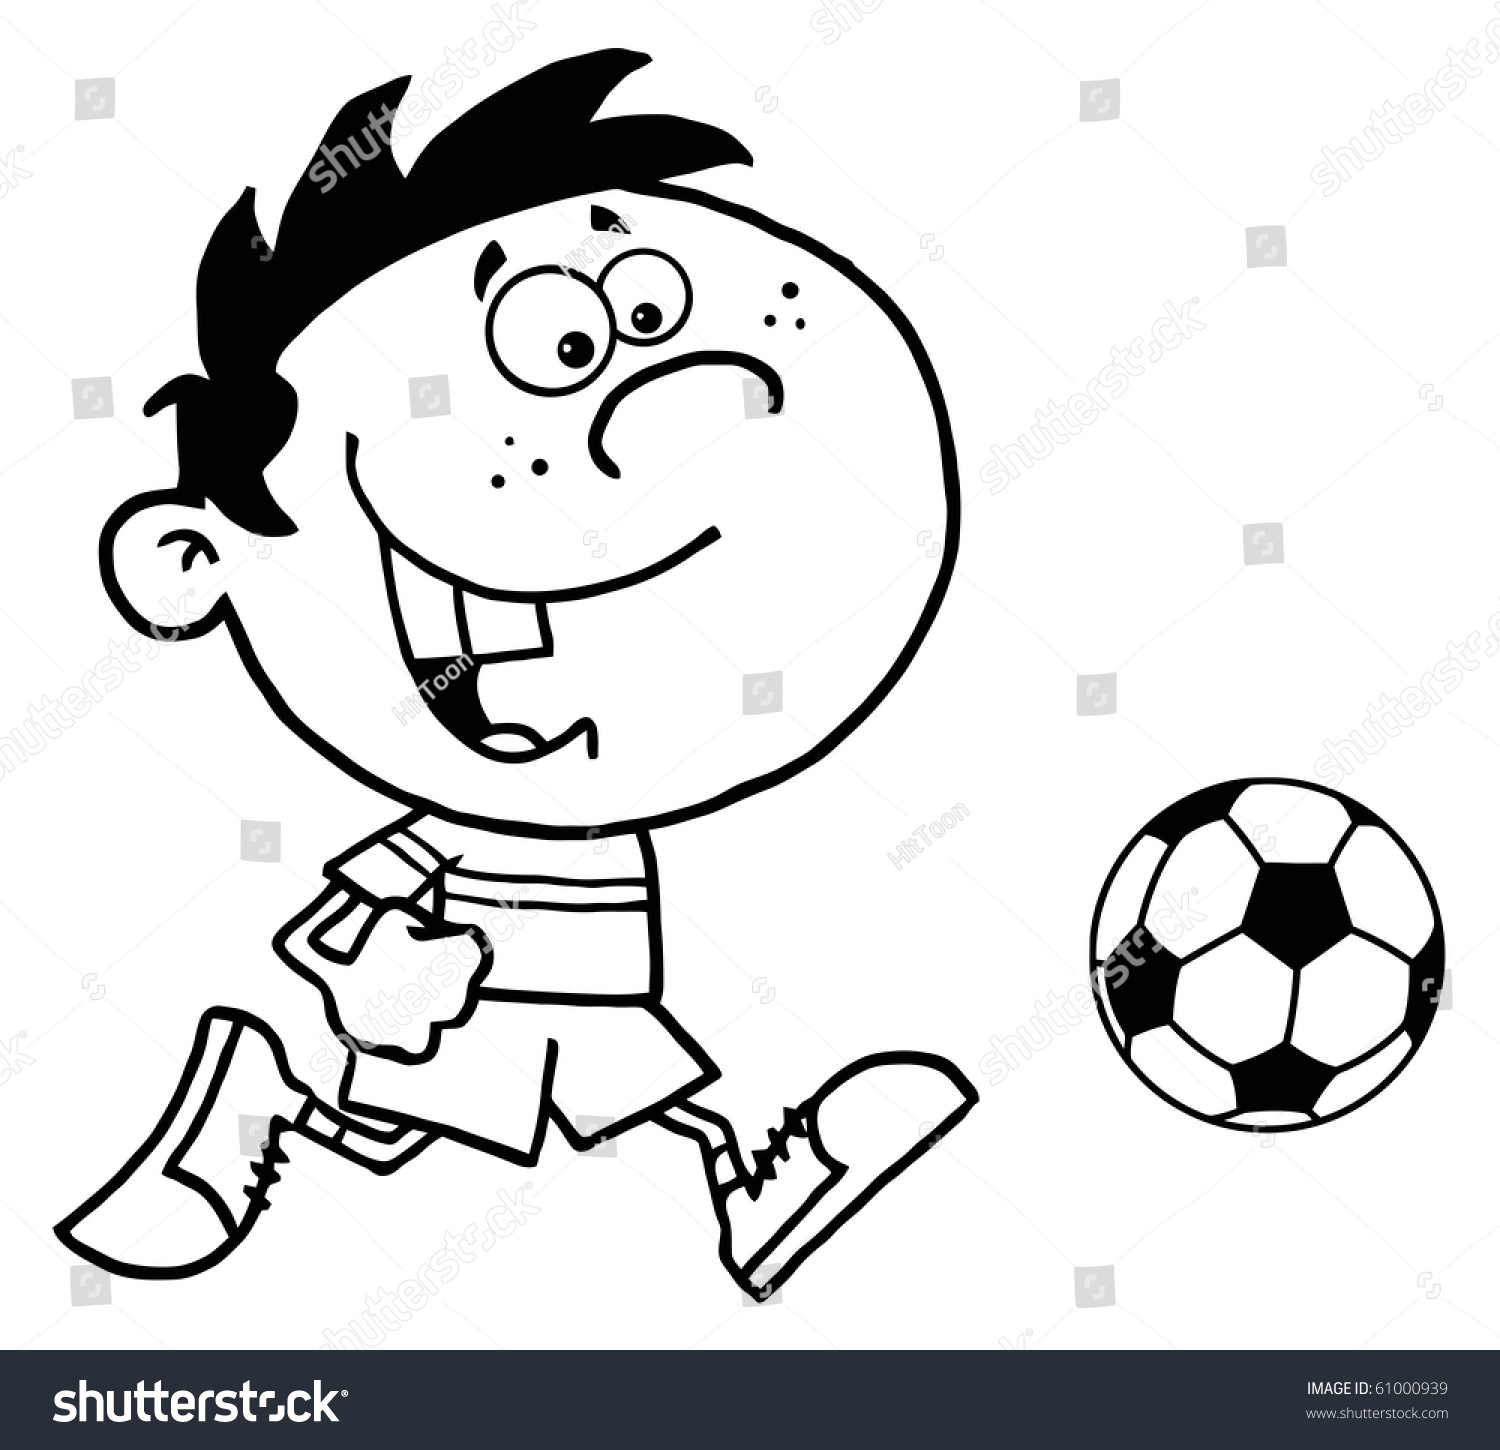 Coloring Page Outline Cartoon Soccer Player Stock Vector (Royalty ...